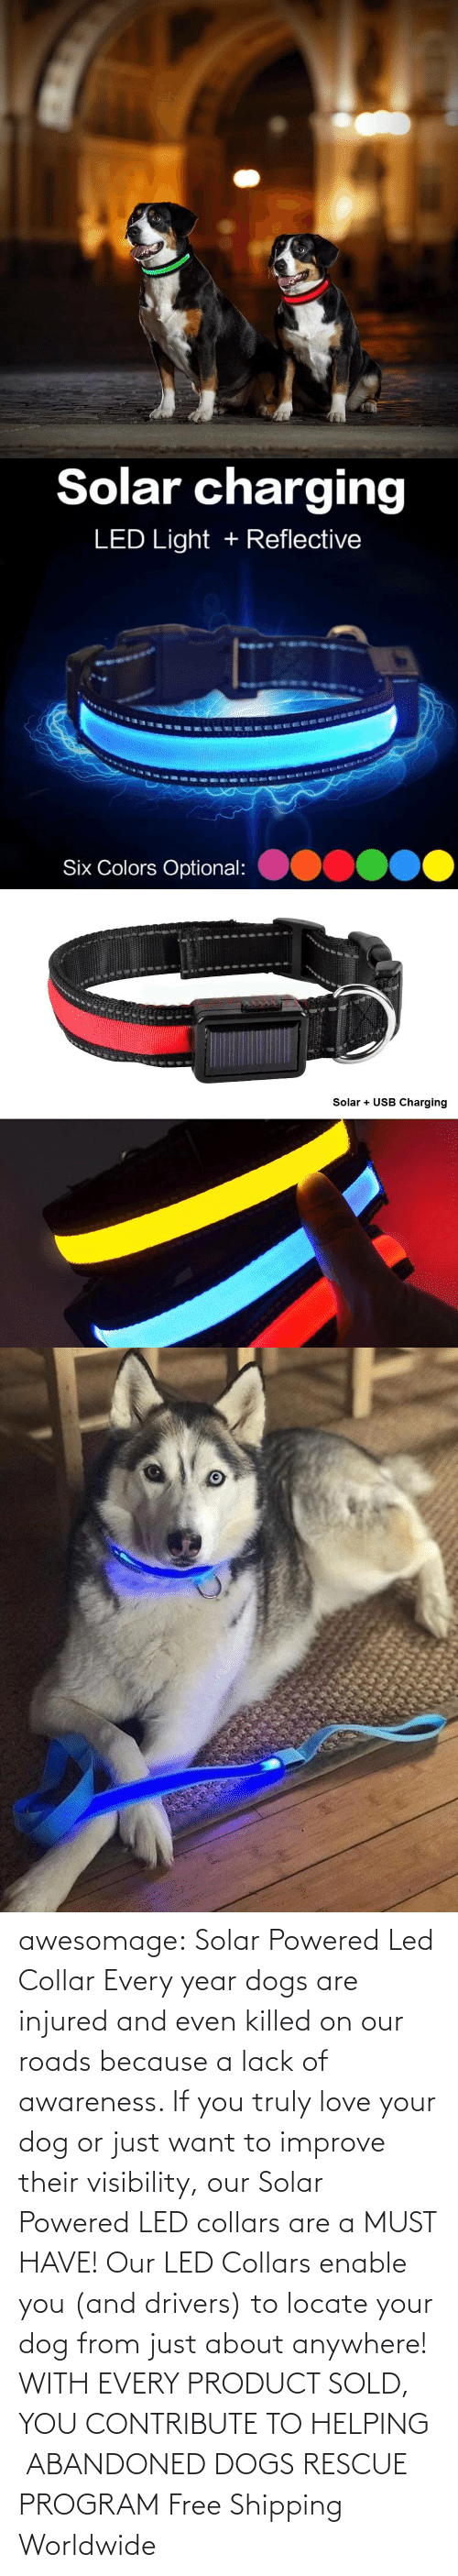 program: awesomage: Solar Powered Led Collar   Every year dogs are injured and even killed on our roads because a lack of awareness. If you truly love your dog or just want to improve their visibility, our Solar Powered LED collars are a MUST HAVE!   Our LED Collars enable you (and drivers) to locate your dog from just about anywhere!     WITH EVERY PRODUCT SOLD, YOU CONTRIBUTE TO HELPING  ABANDONED DOGS RESCUE PROGRAM     Free Shipping Worldwide